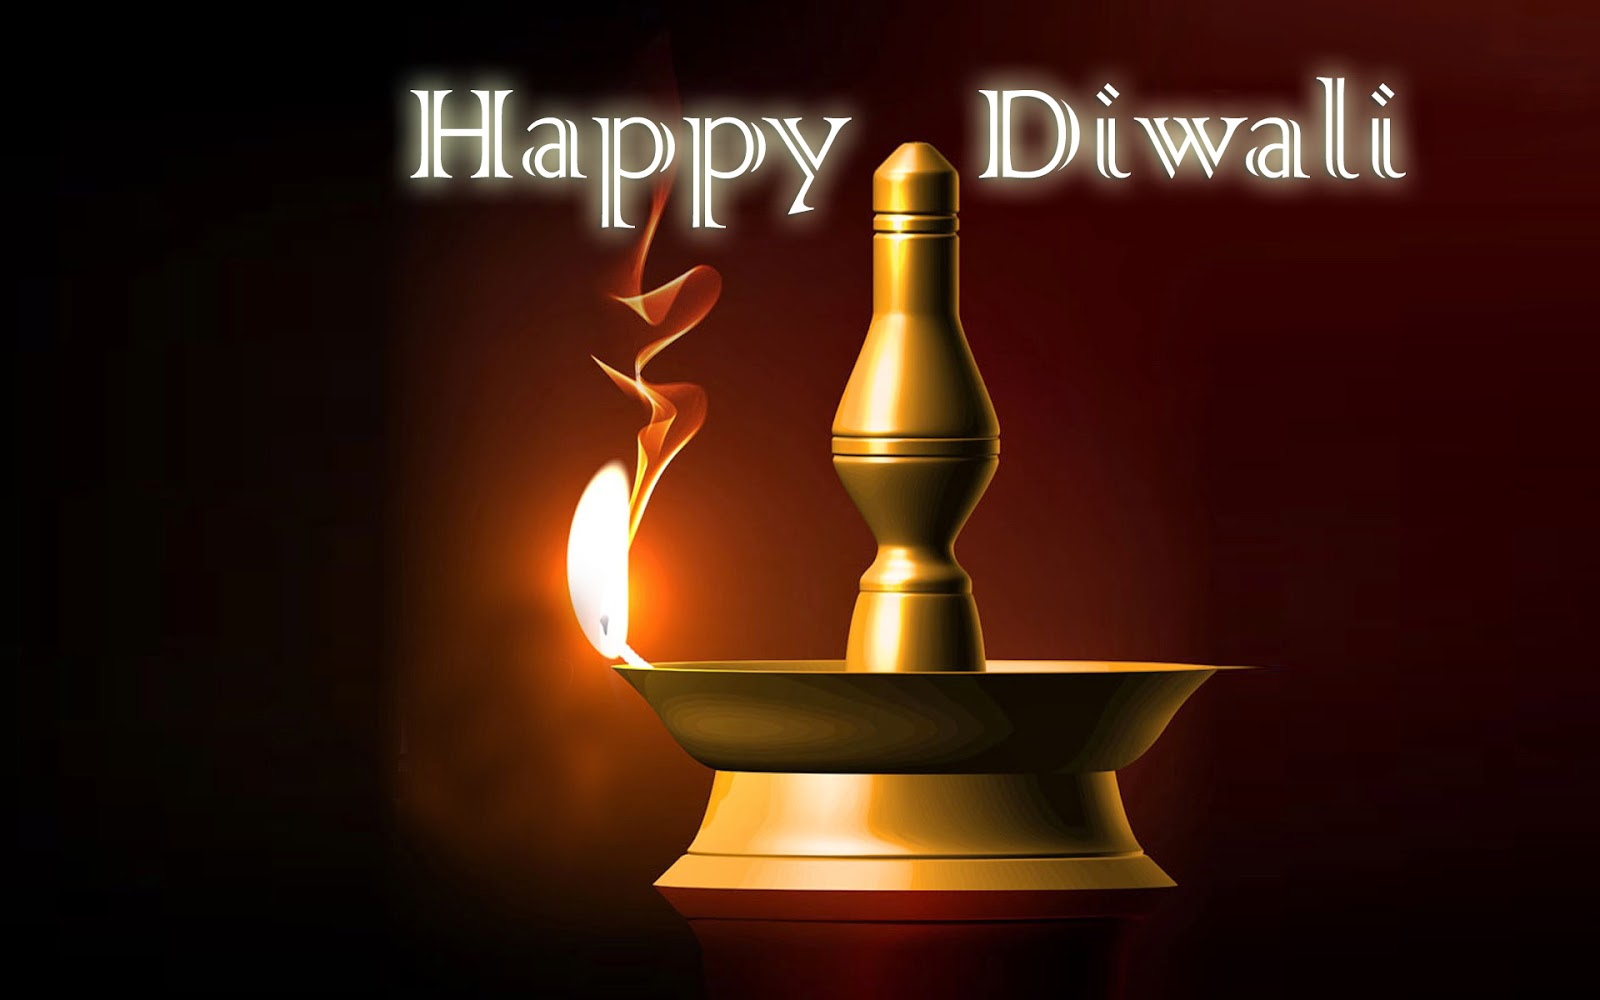 Happy Diwali 2014 Greeting and Wishes HD Wallpapers Free ...  Happy Diwali 20...